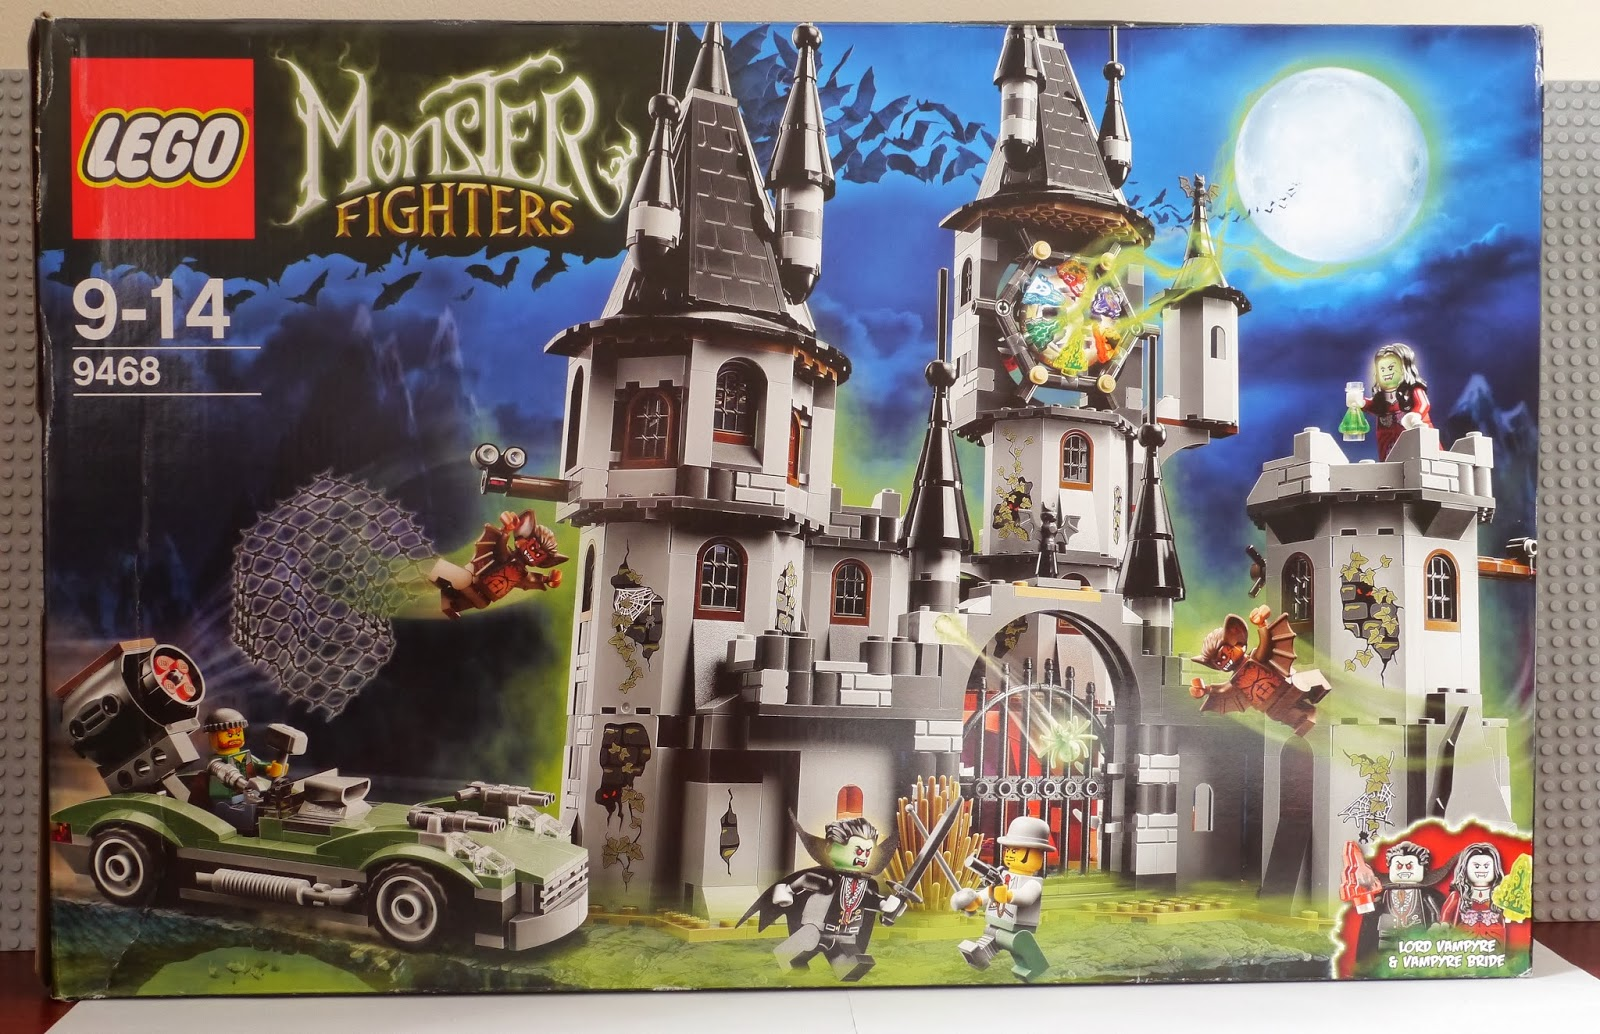 the car features a net launcher for the monster fighters to try to catch a man bat or vampyre - Lego Monstre